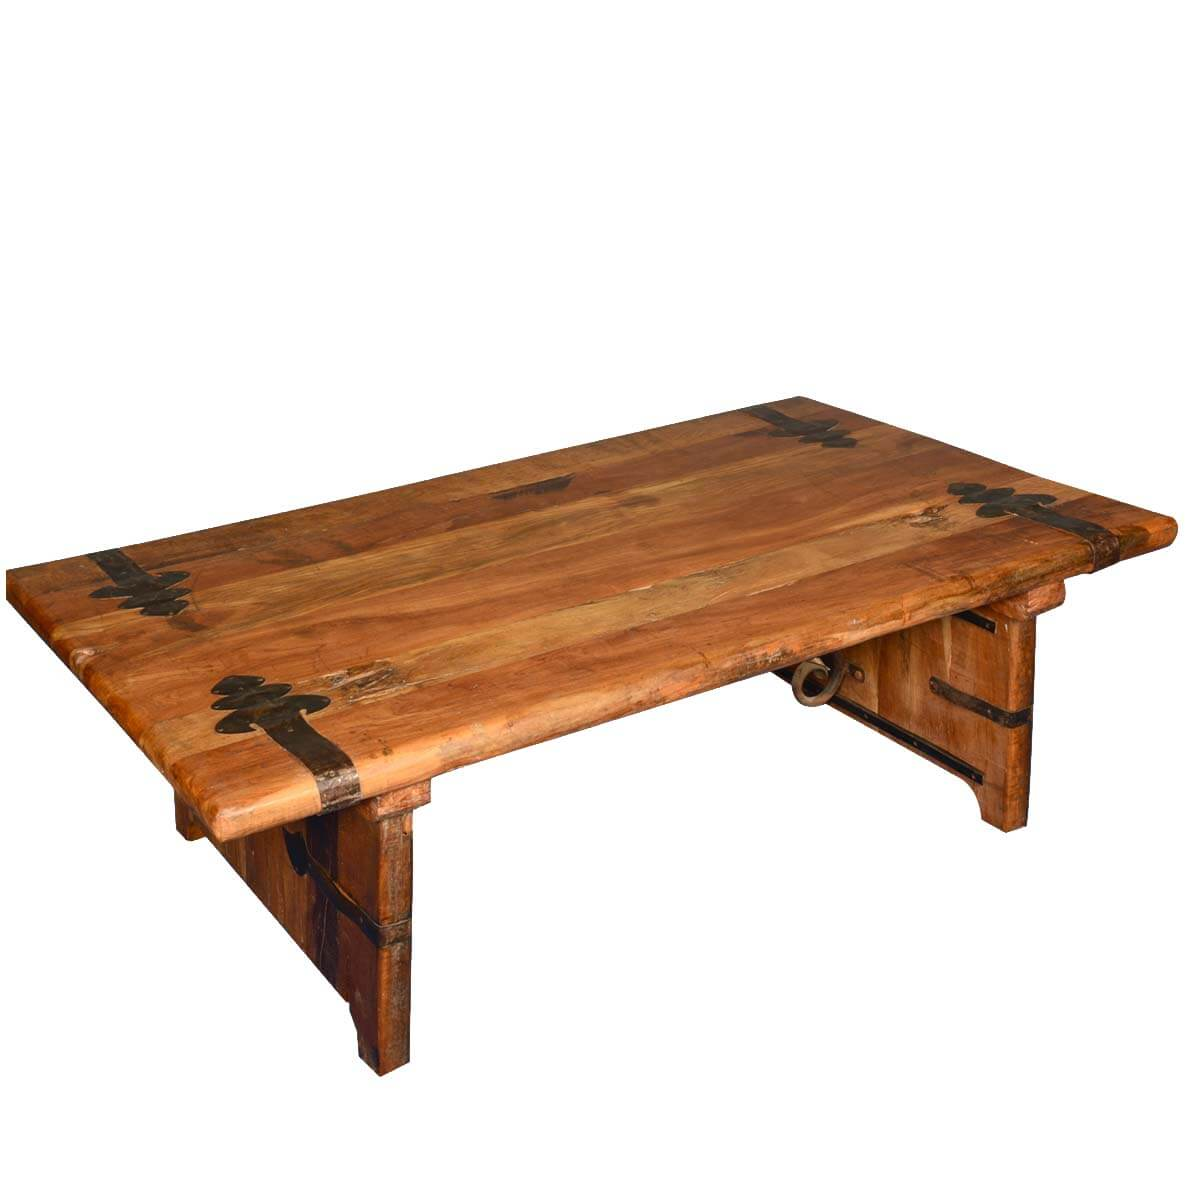 Rustic reclaimed wood wrought iron hastings coffee table Rustic iron coffee table